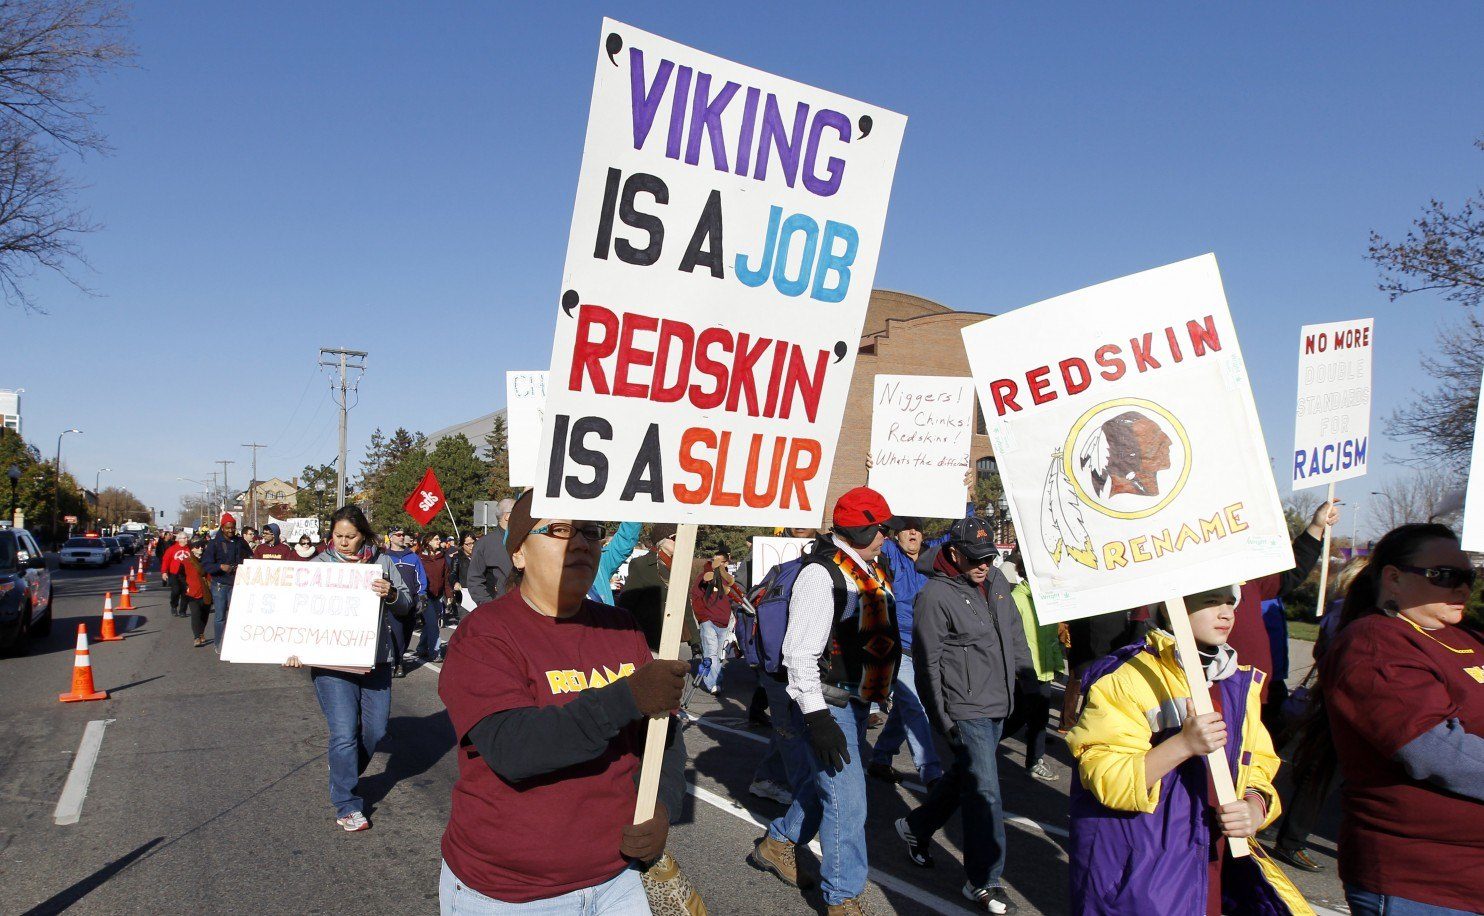 Supreme Court Washington Redskins